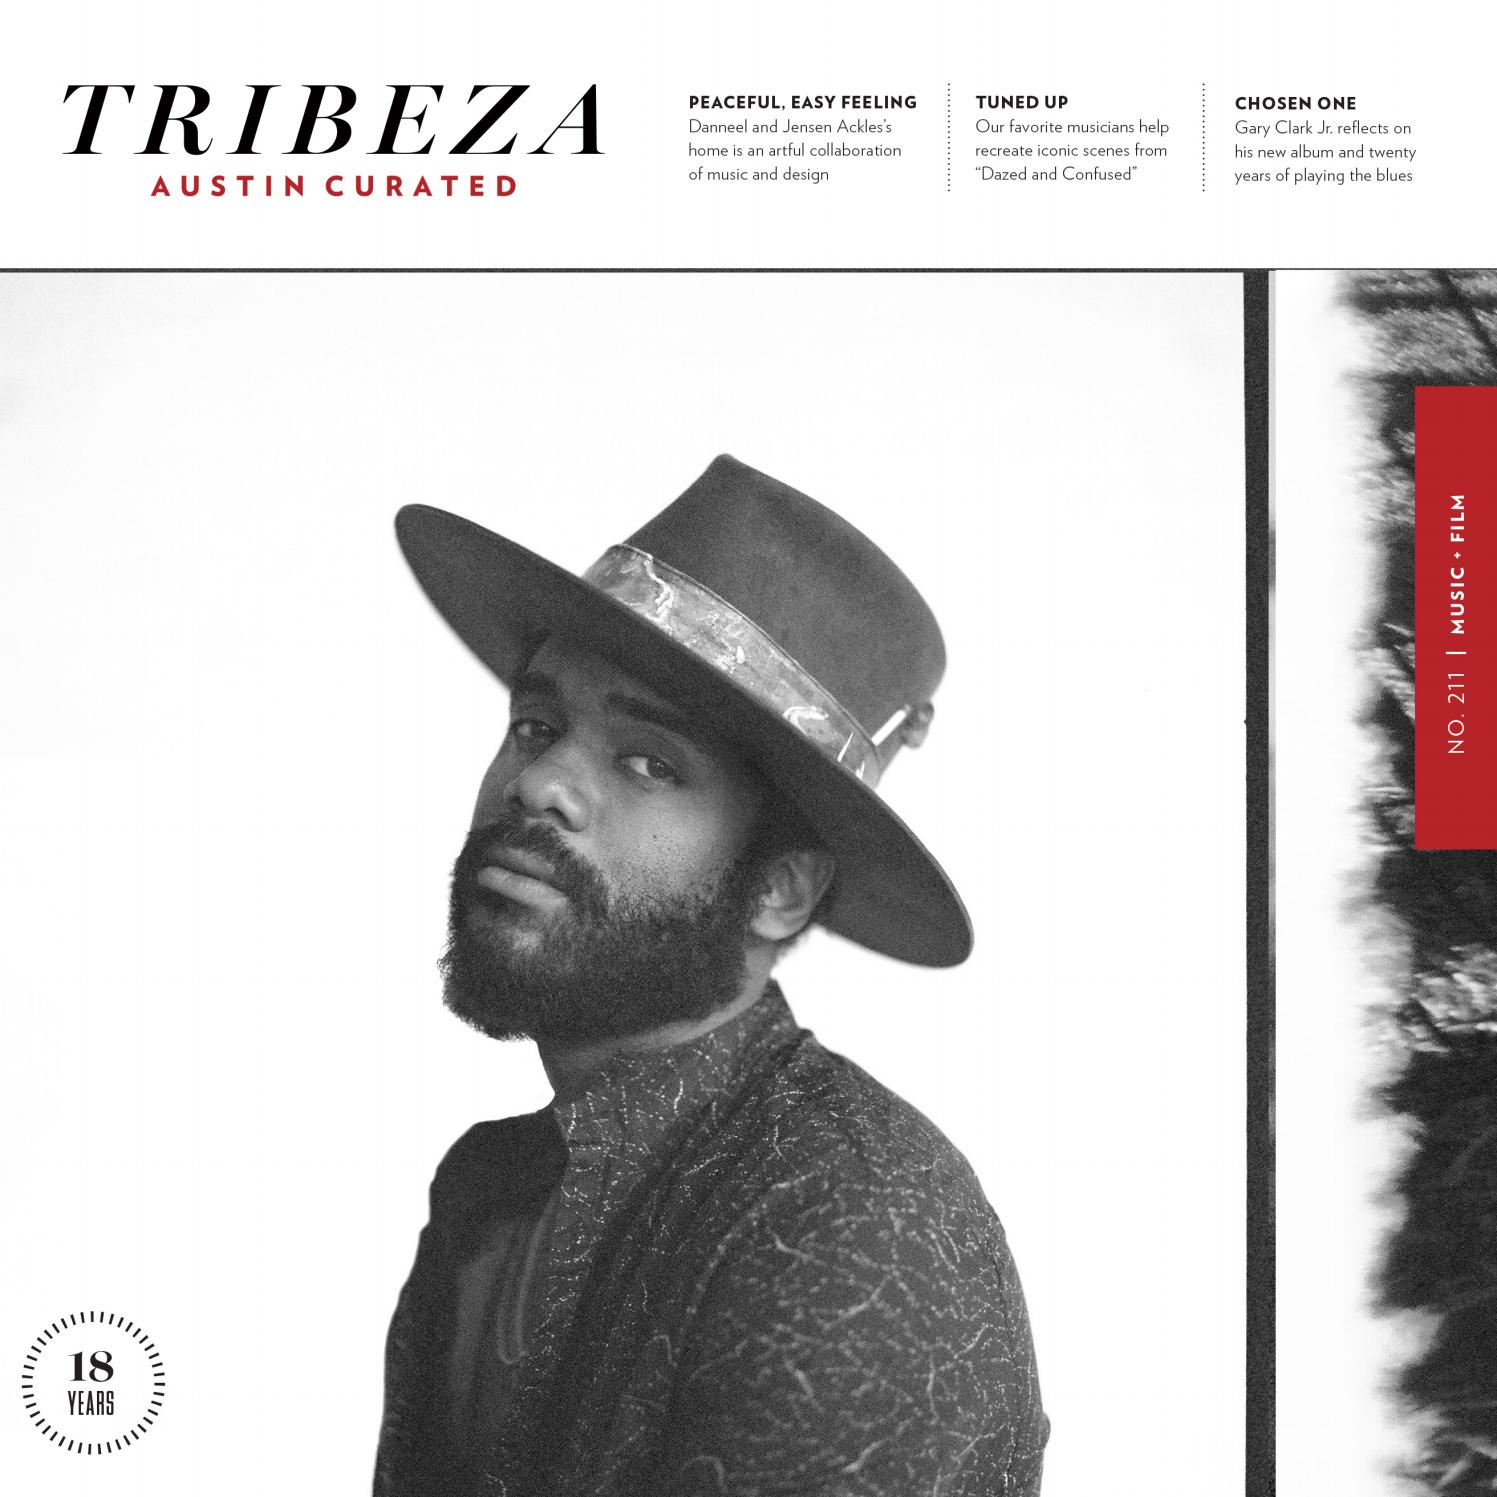 0b12baf0cf7ad TRIBEZA March 2019 by TRIBEZA Austin Curated - issuu